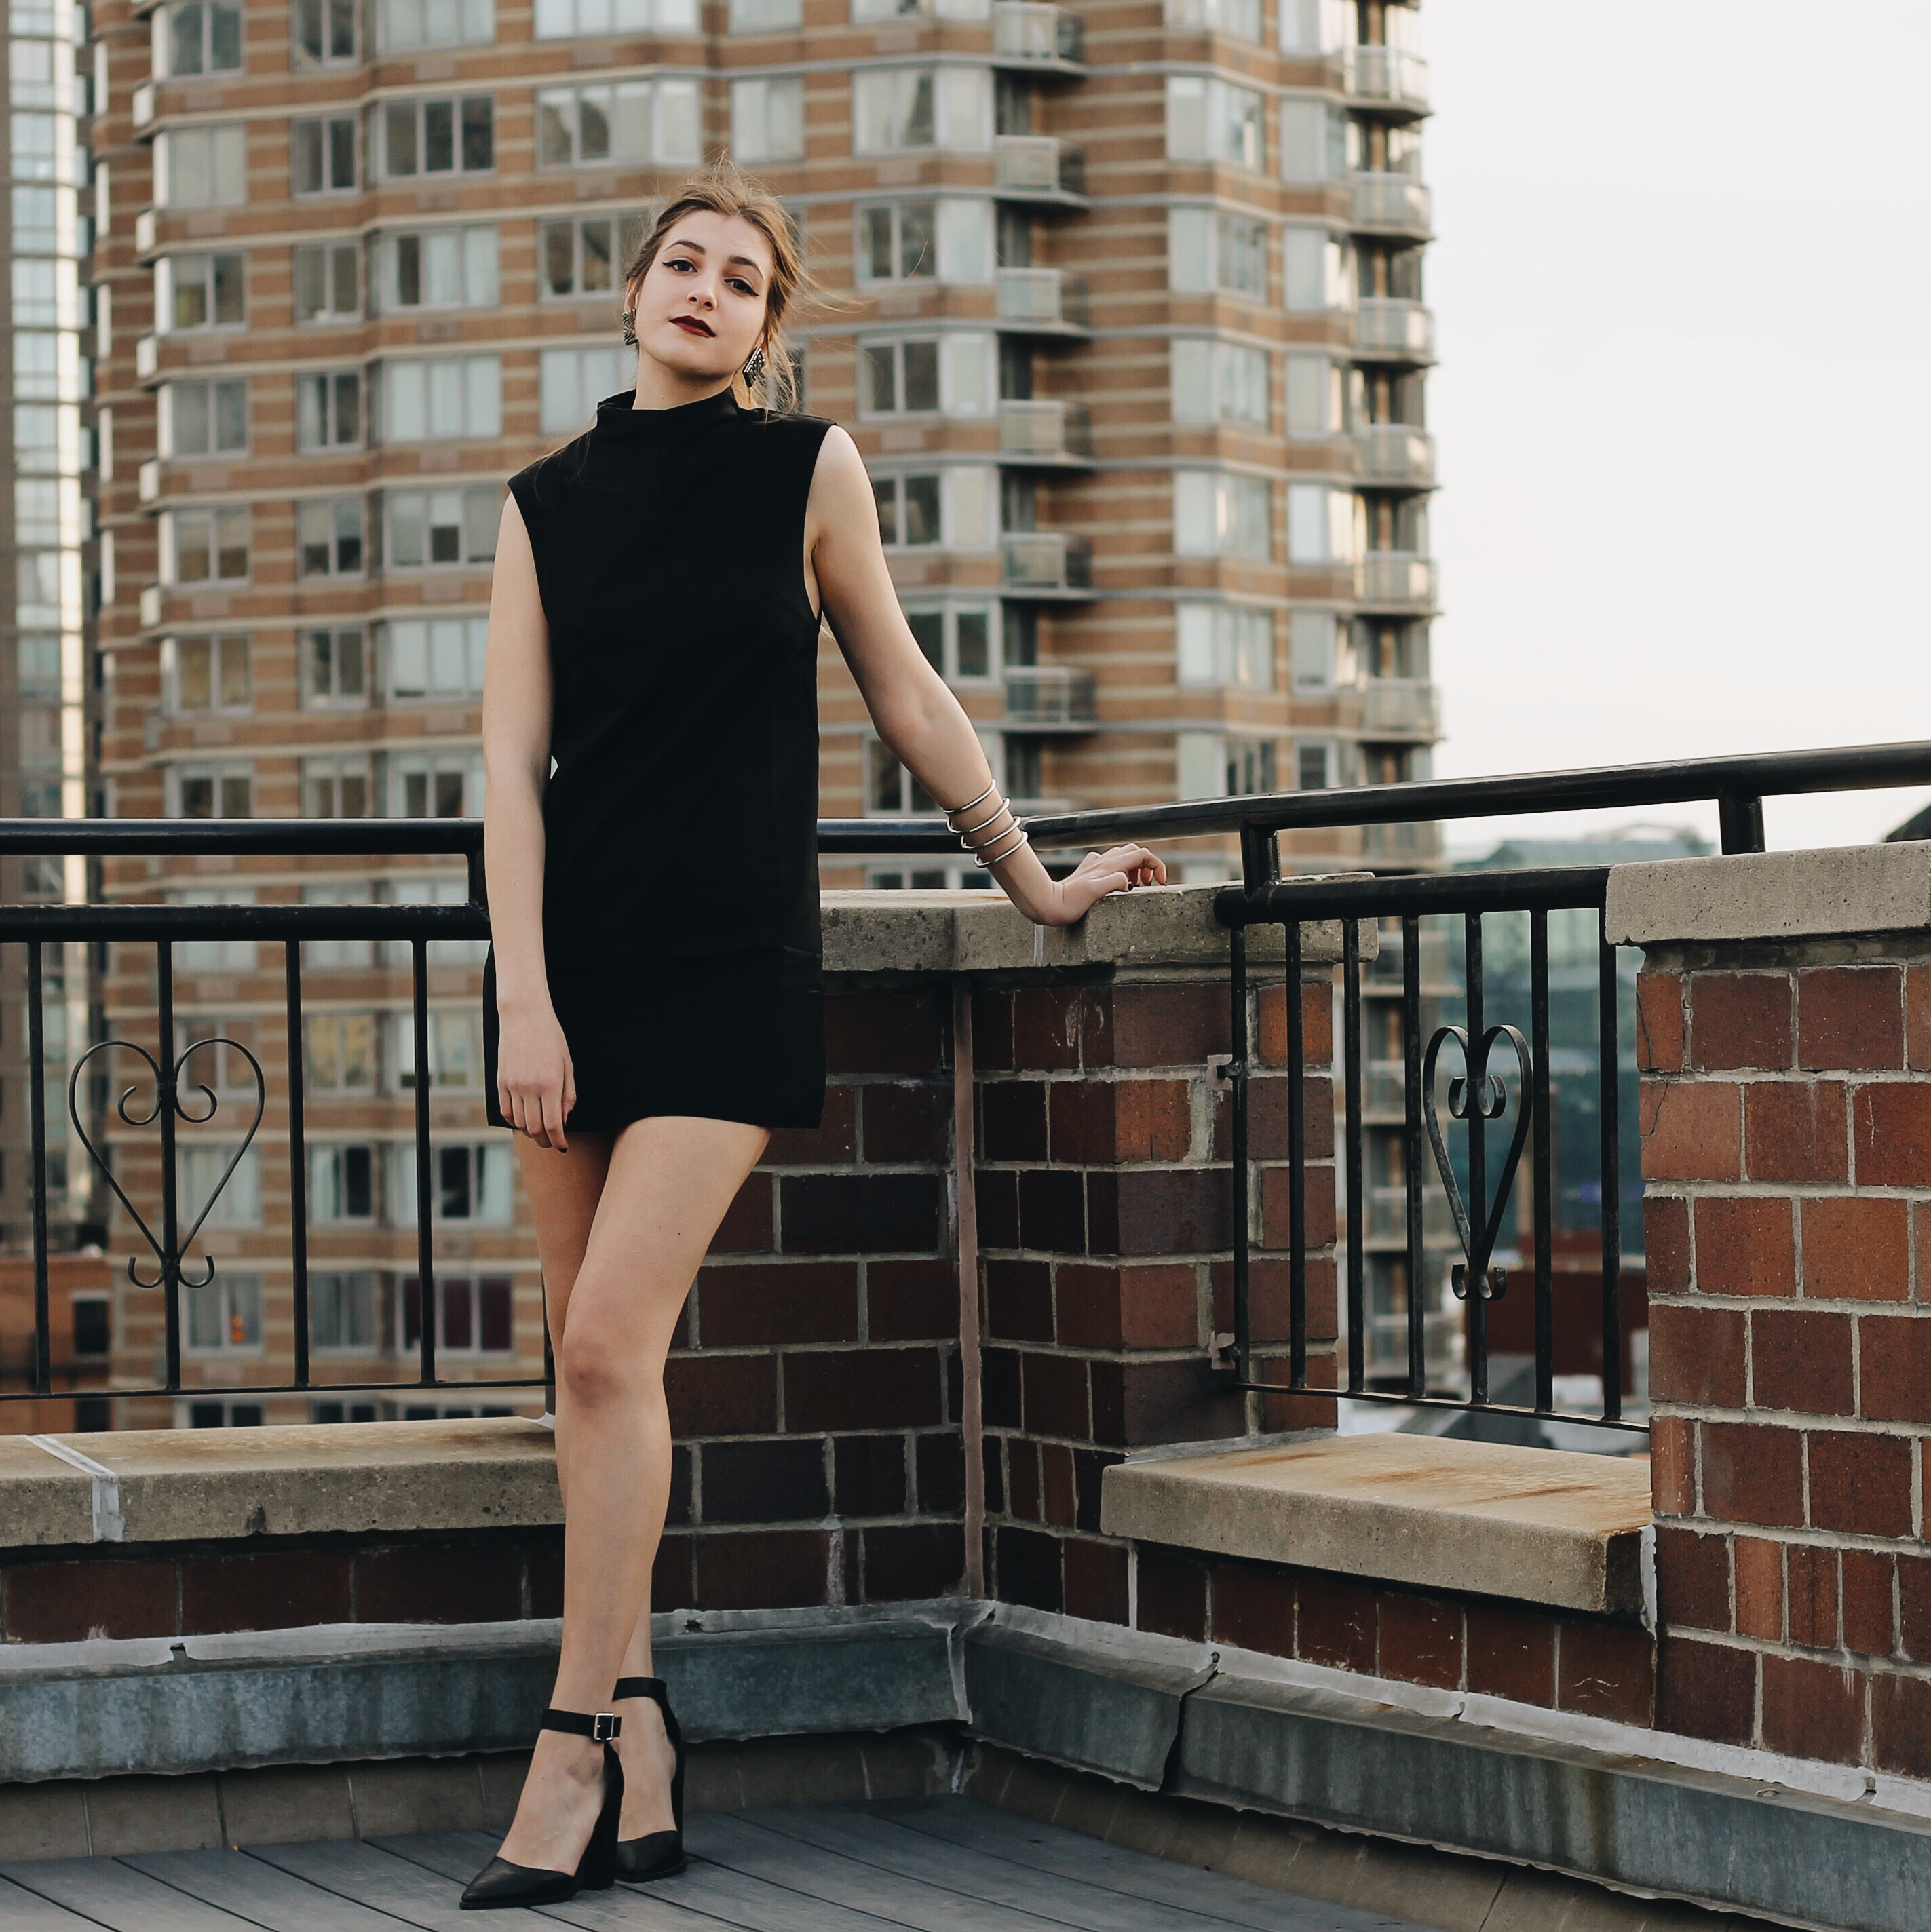 How To Style An LBD 3 Ways [www.whatkumquat.com]